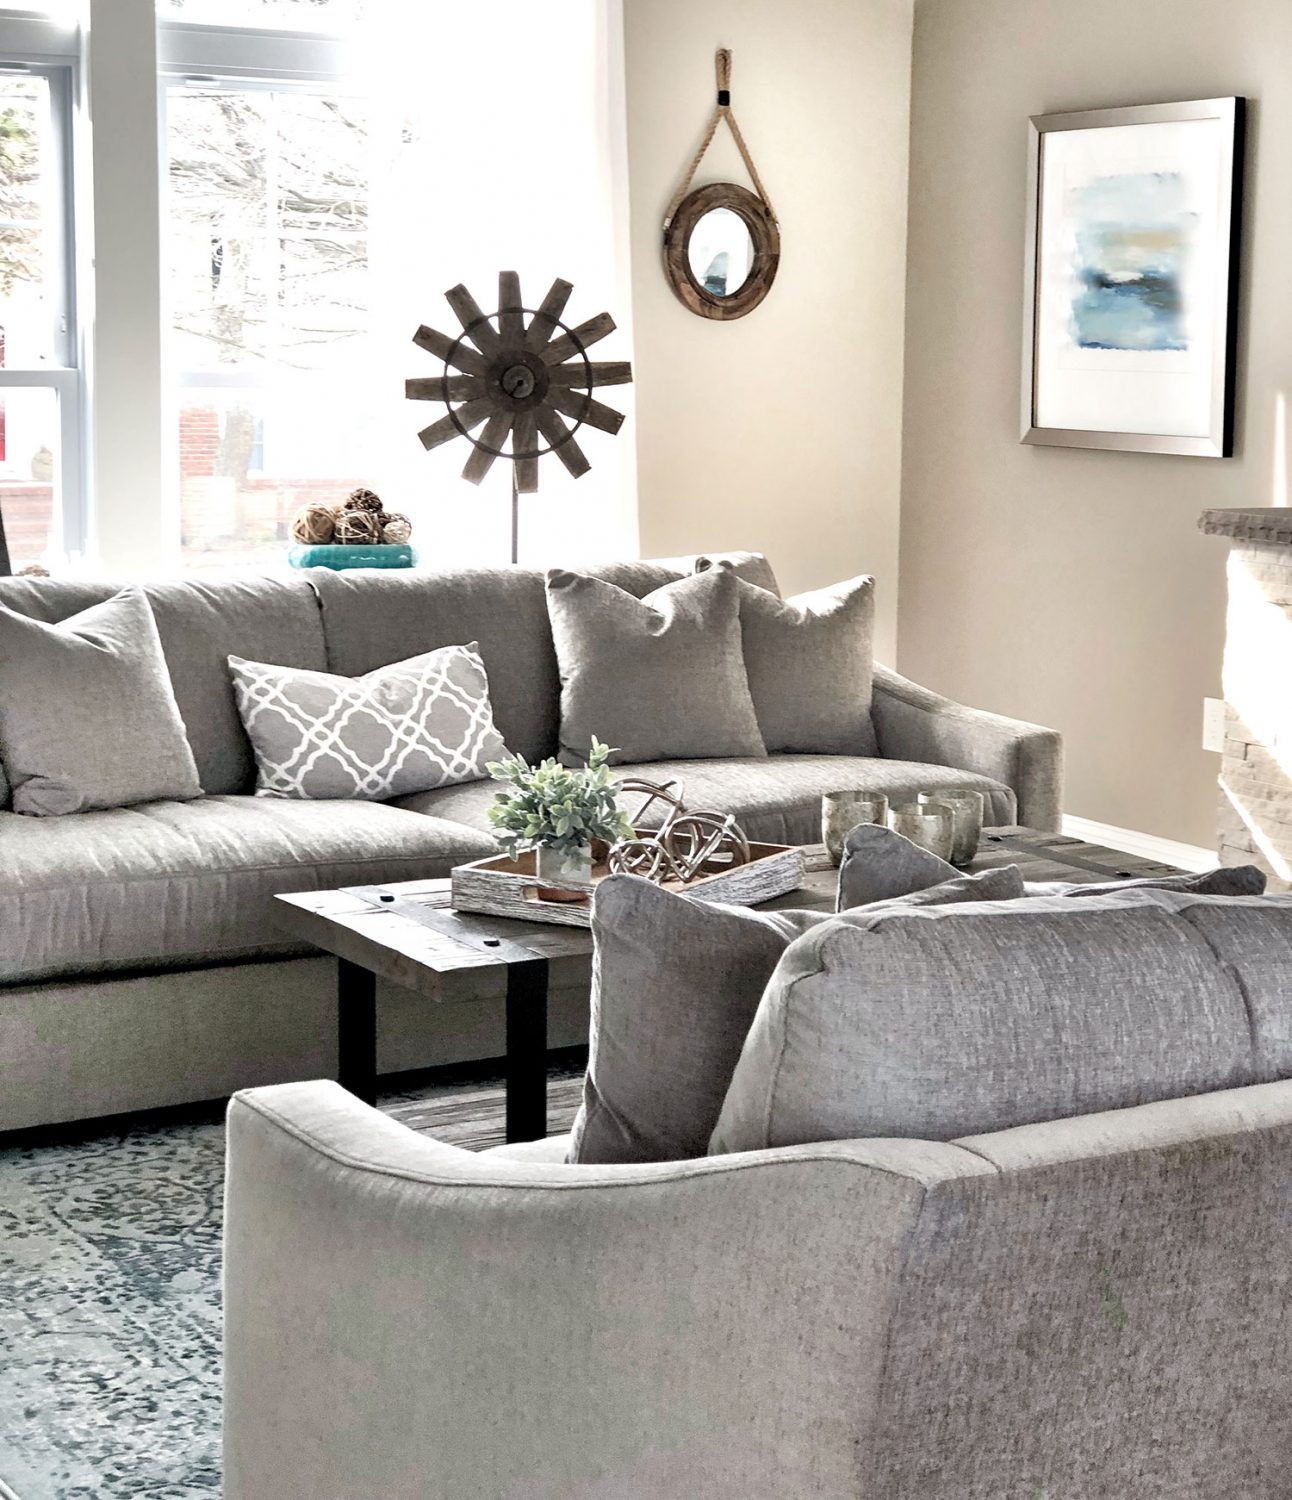 Lavallette New Jersey - Living Room Interior Design